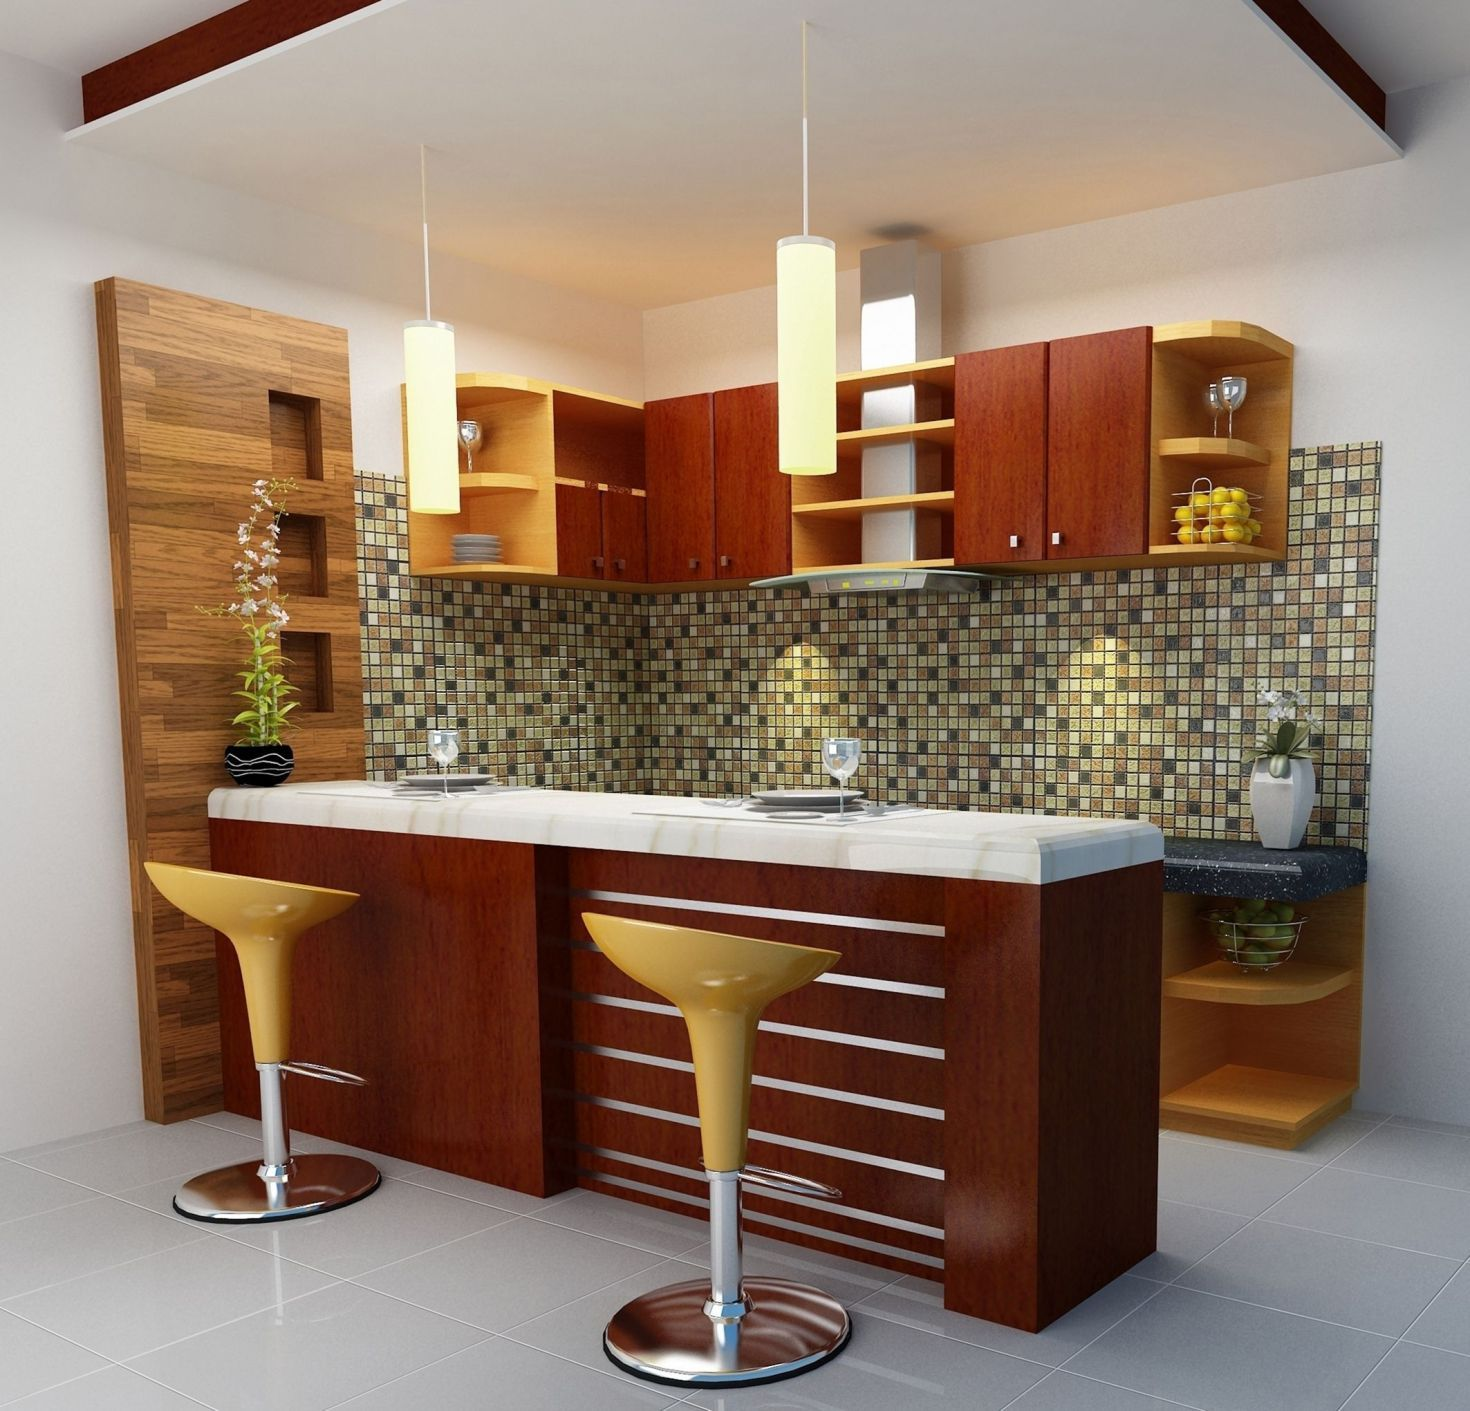 Interior Design Ideas Home Bar: Amazing Mini Kitchen Bar Design For Home Design Plan Idea